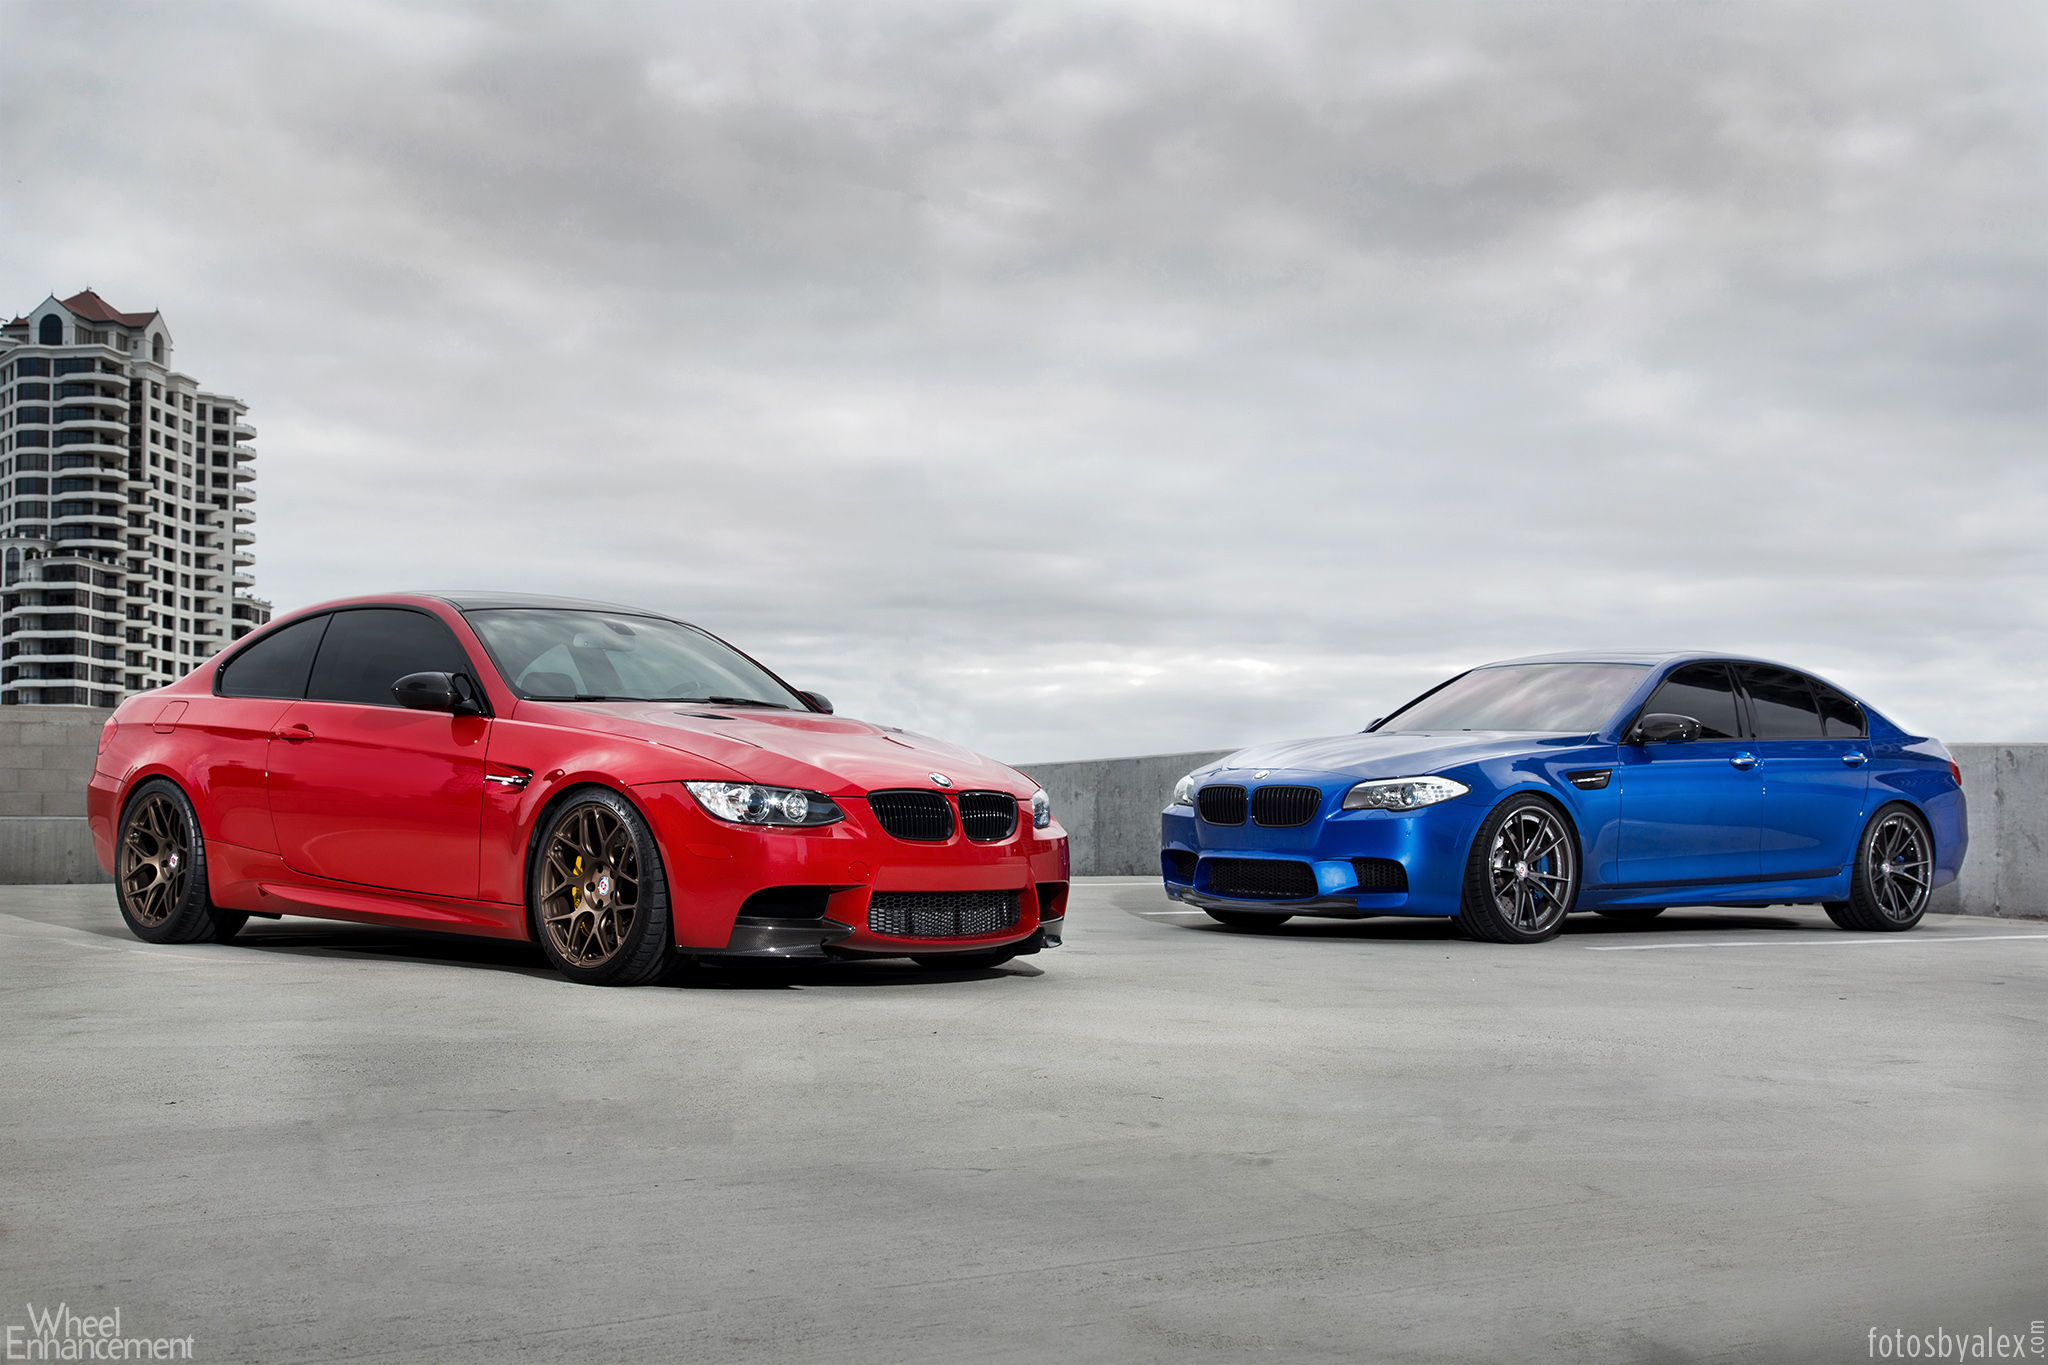 M Brothers Pose Together Bmw M3 And M5 Riding On Hre